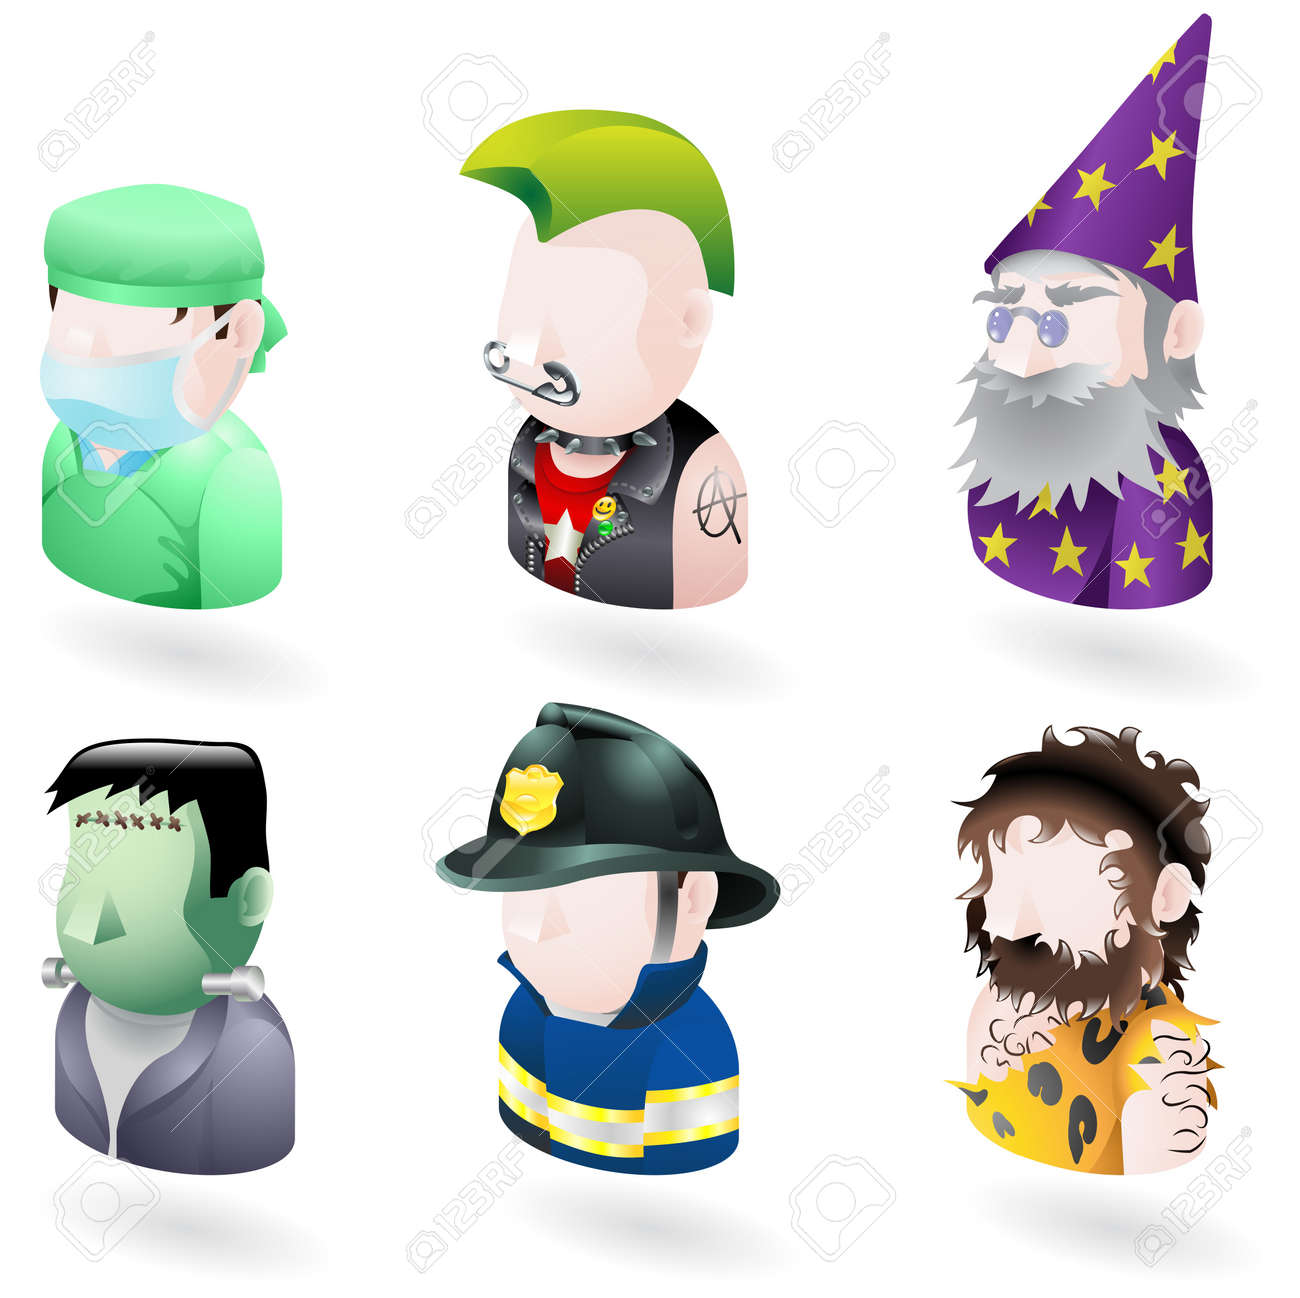 An avatar people web or internet icon set series. Includes a doctor or surgeon, a punk, a wizard or magician, Frankenstein monster, a firefighter or fireman and a caveman. Stock Vector - 5220316